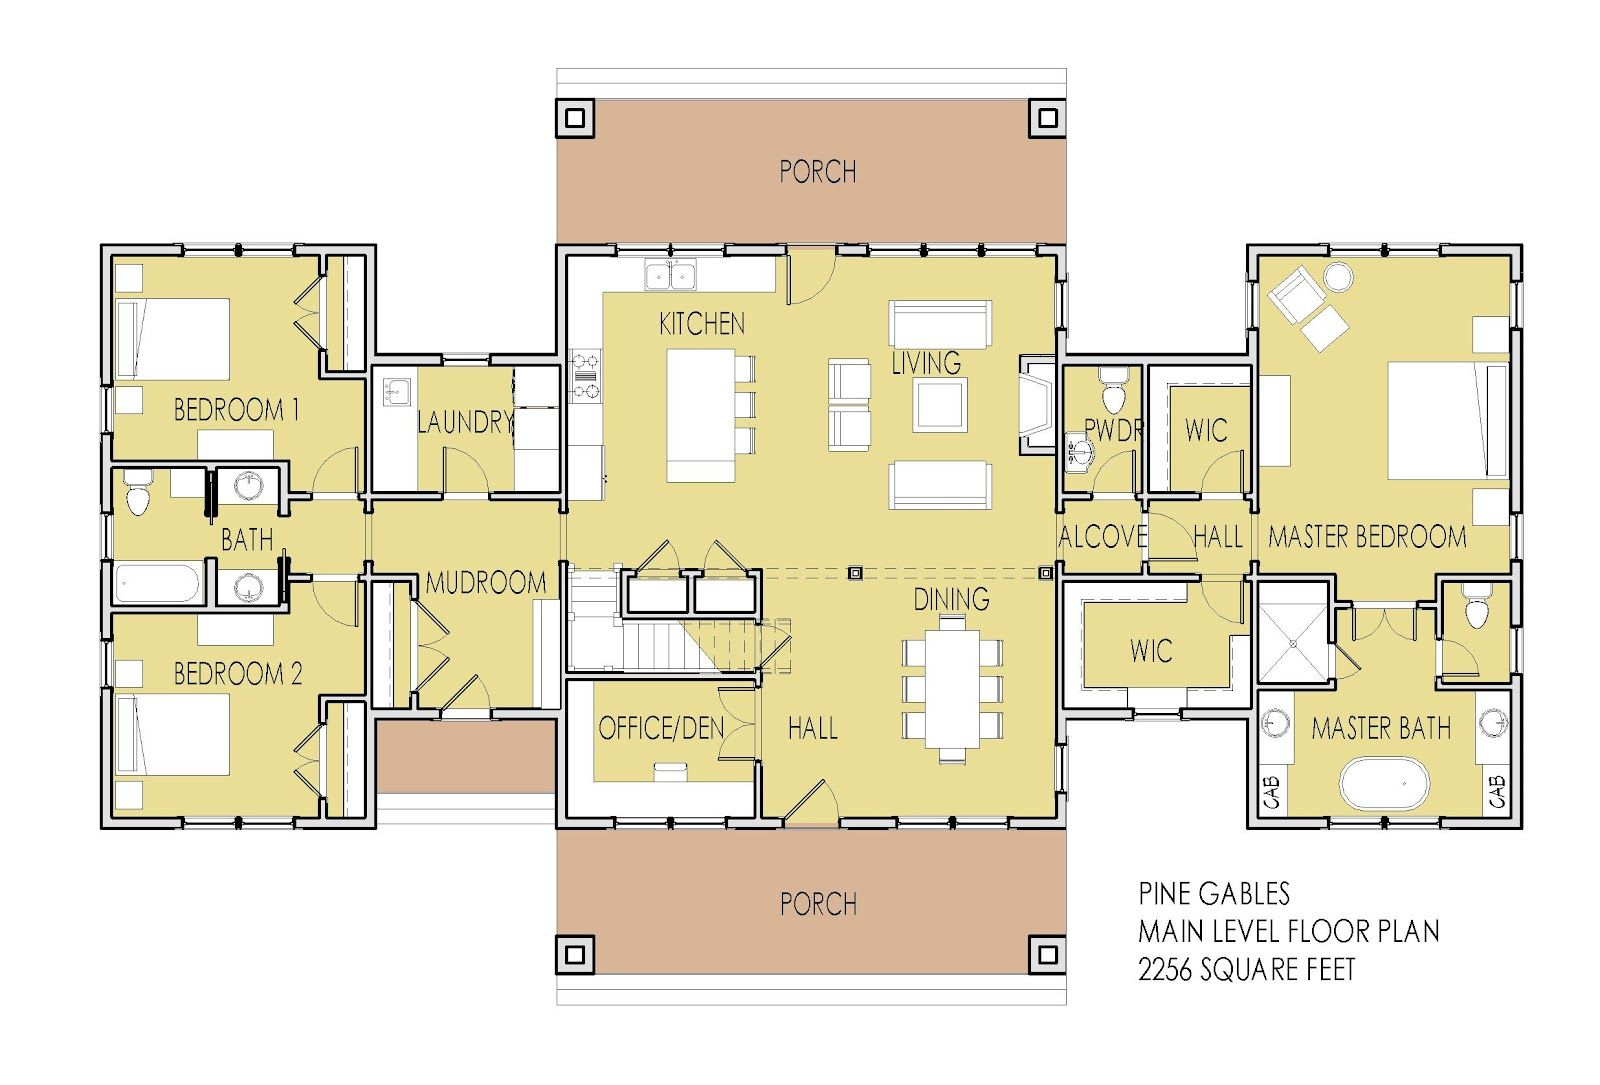 new house plans stock images image 2838684 new house plan hdc 1752